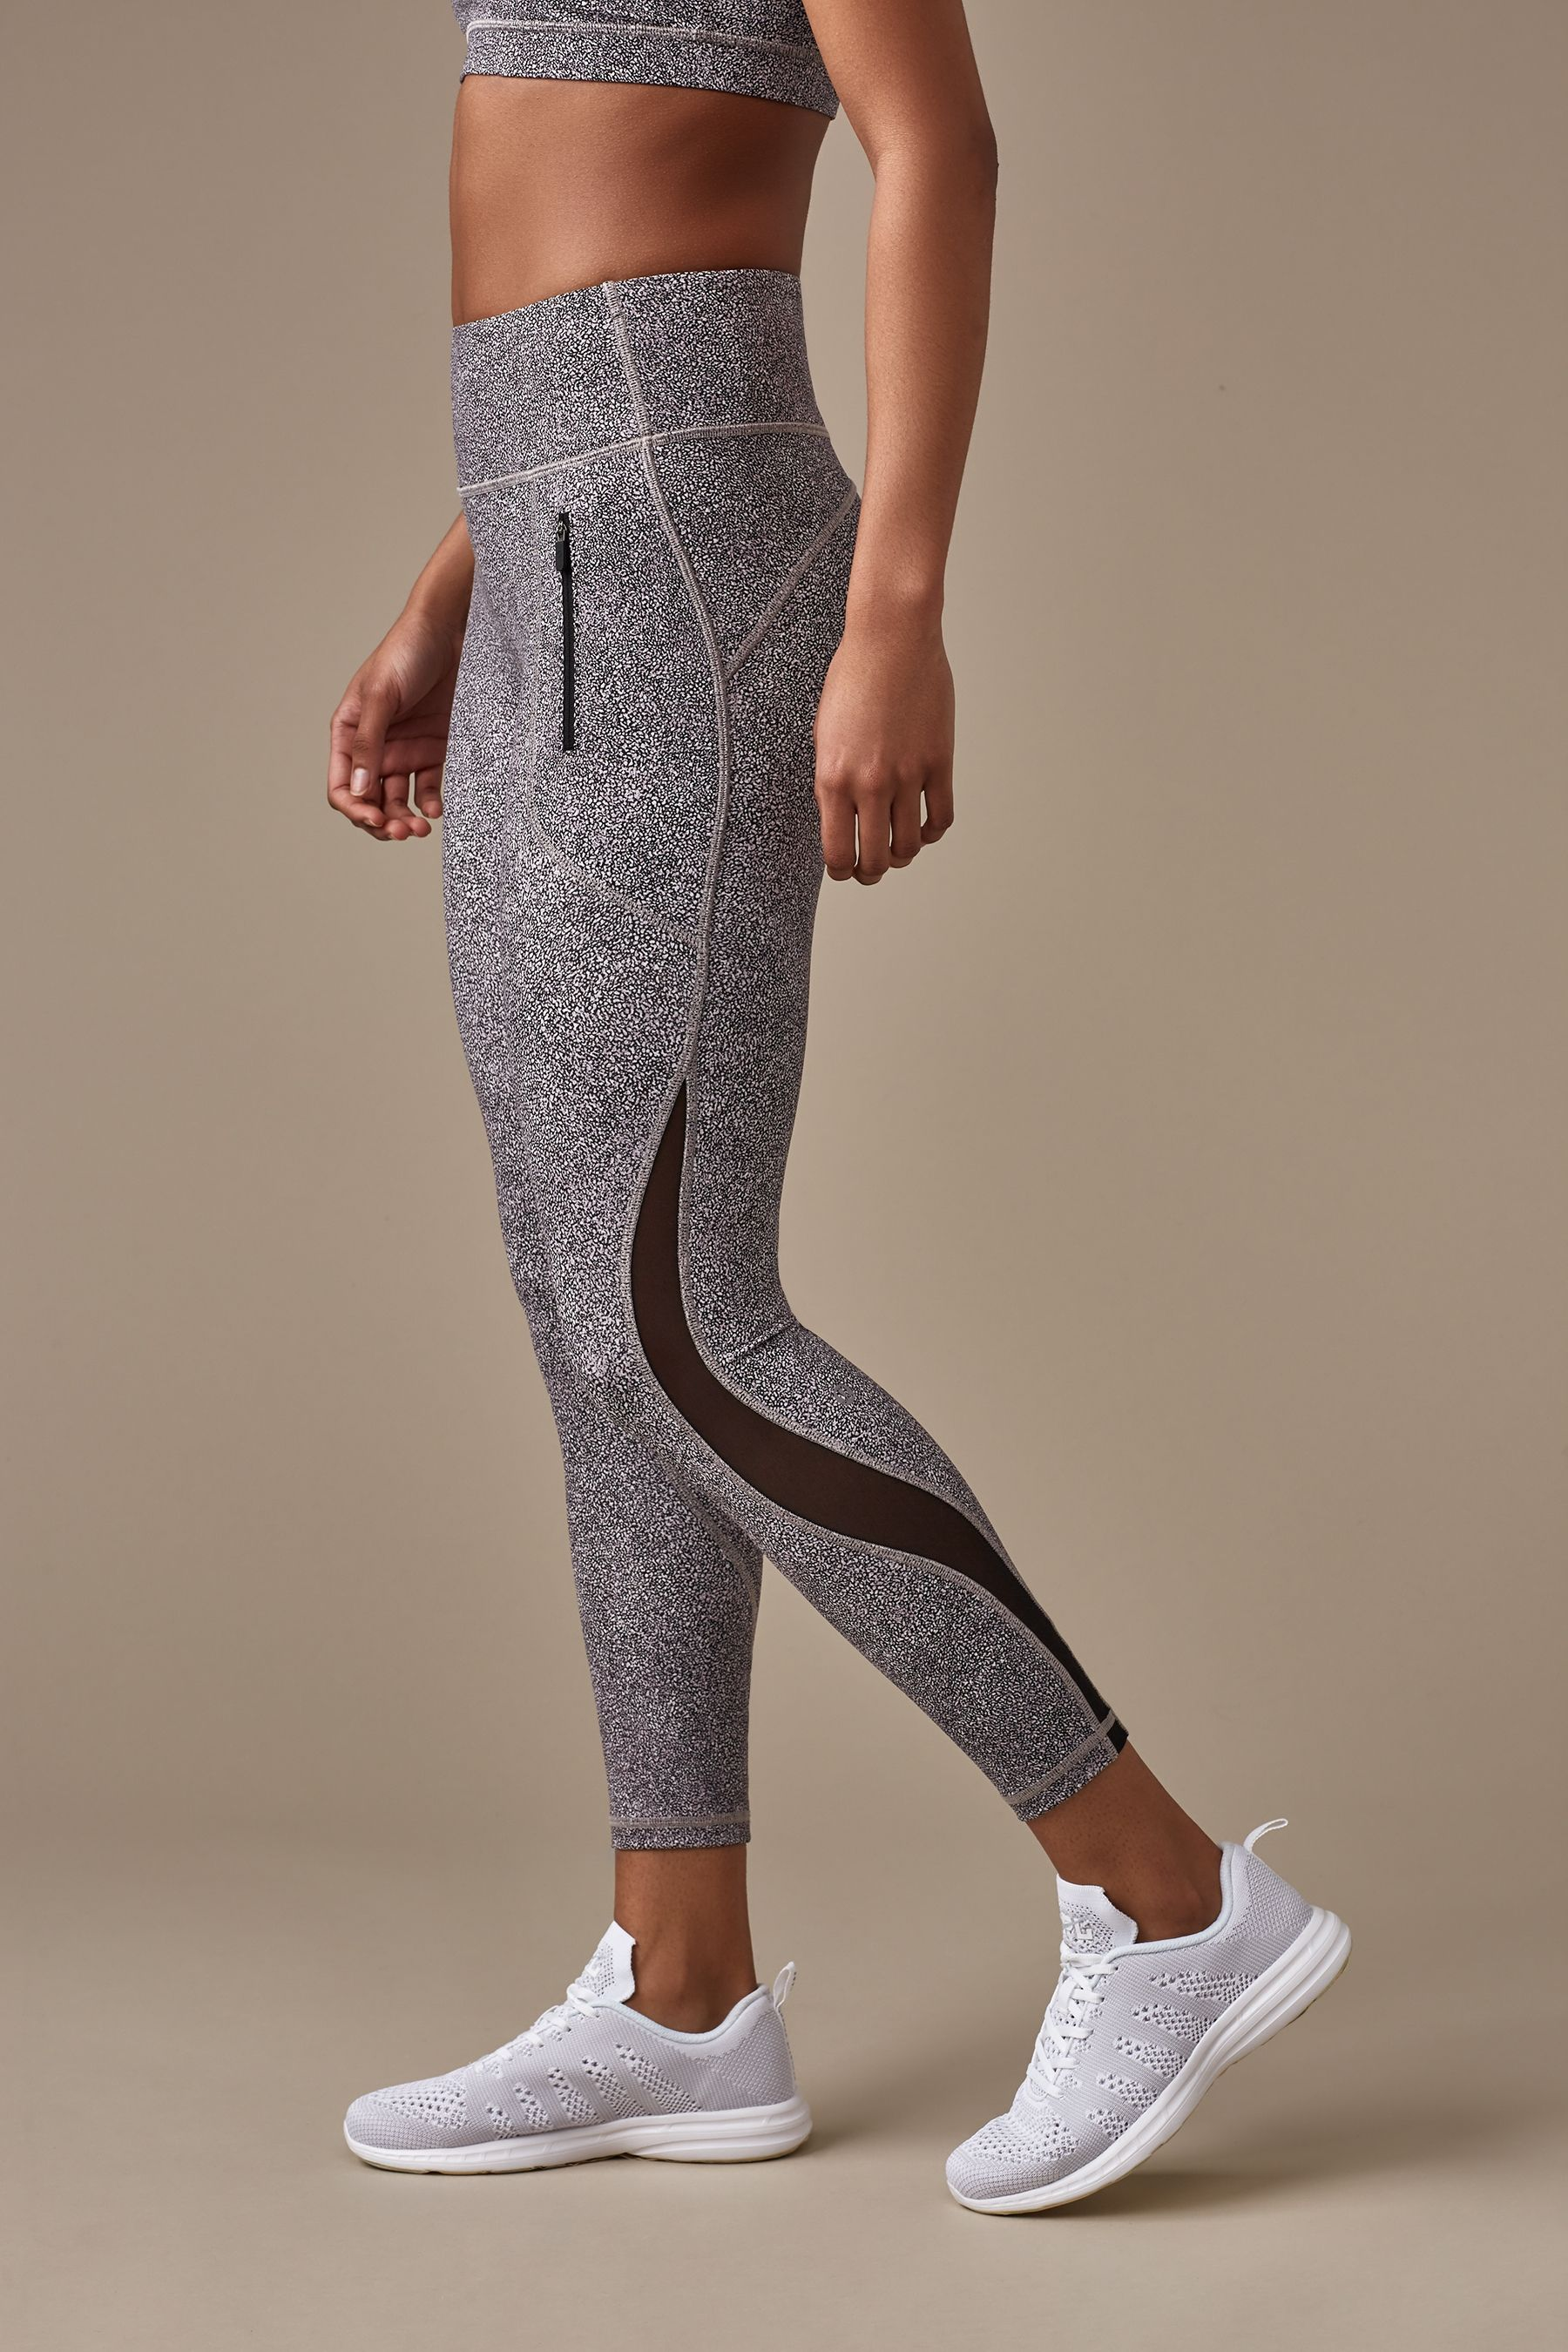 Fresh morning runs feel freer than ever when your tights